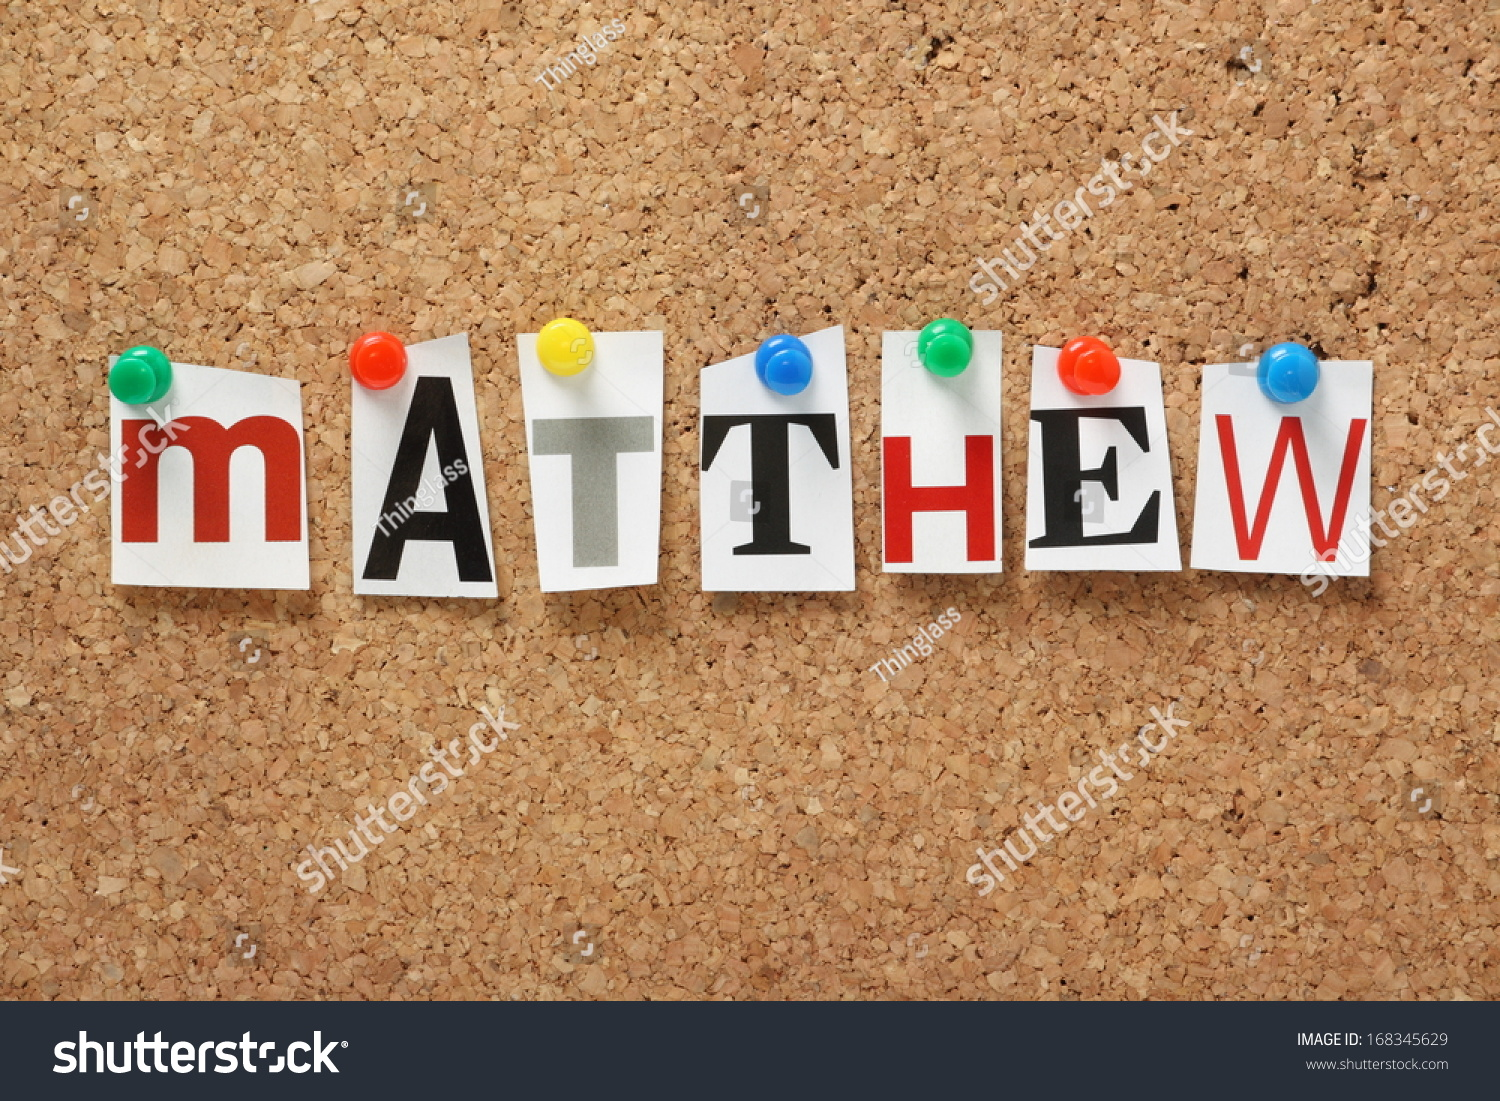 Name matthew one books holy bible stock photo 168345629 shutterstock spiritdancerdesigns Images